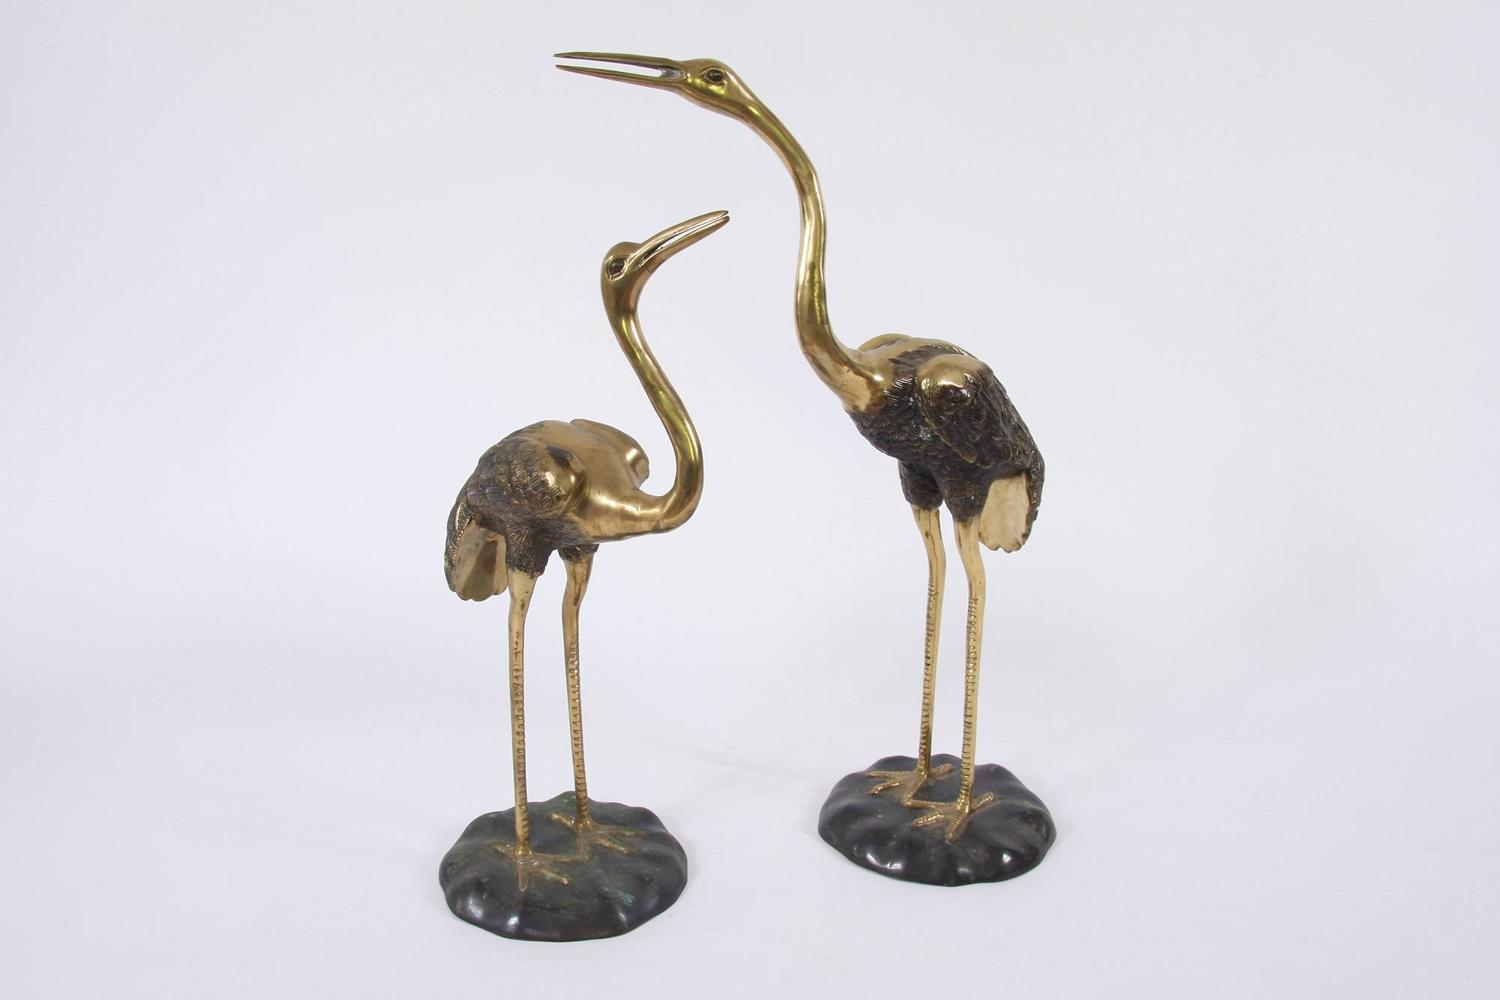 Pair of Brass Cranes